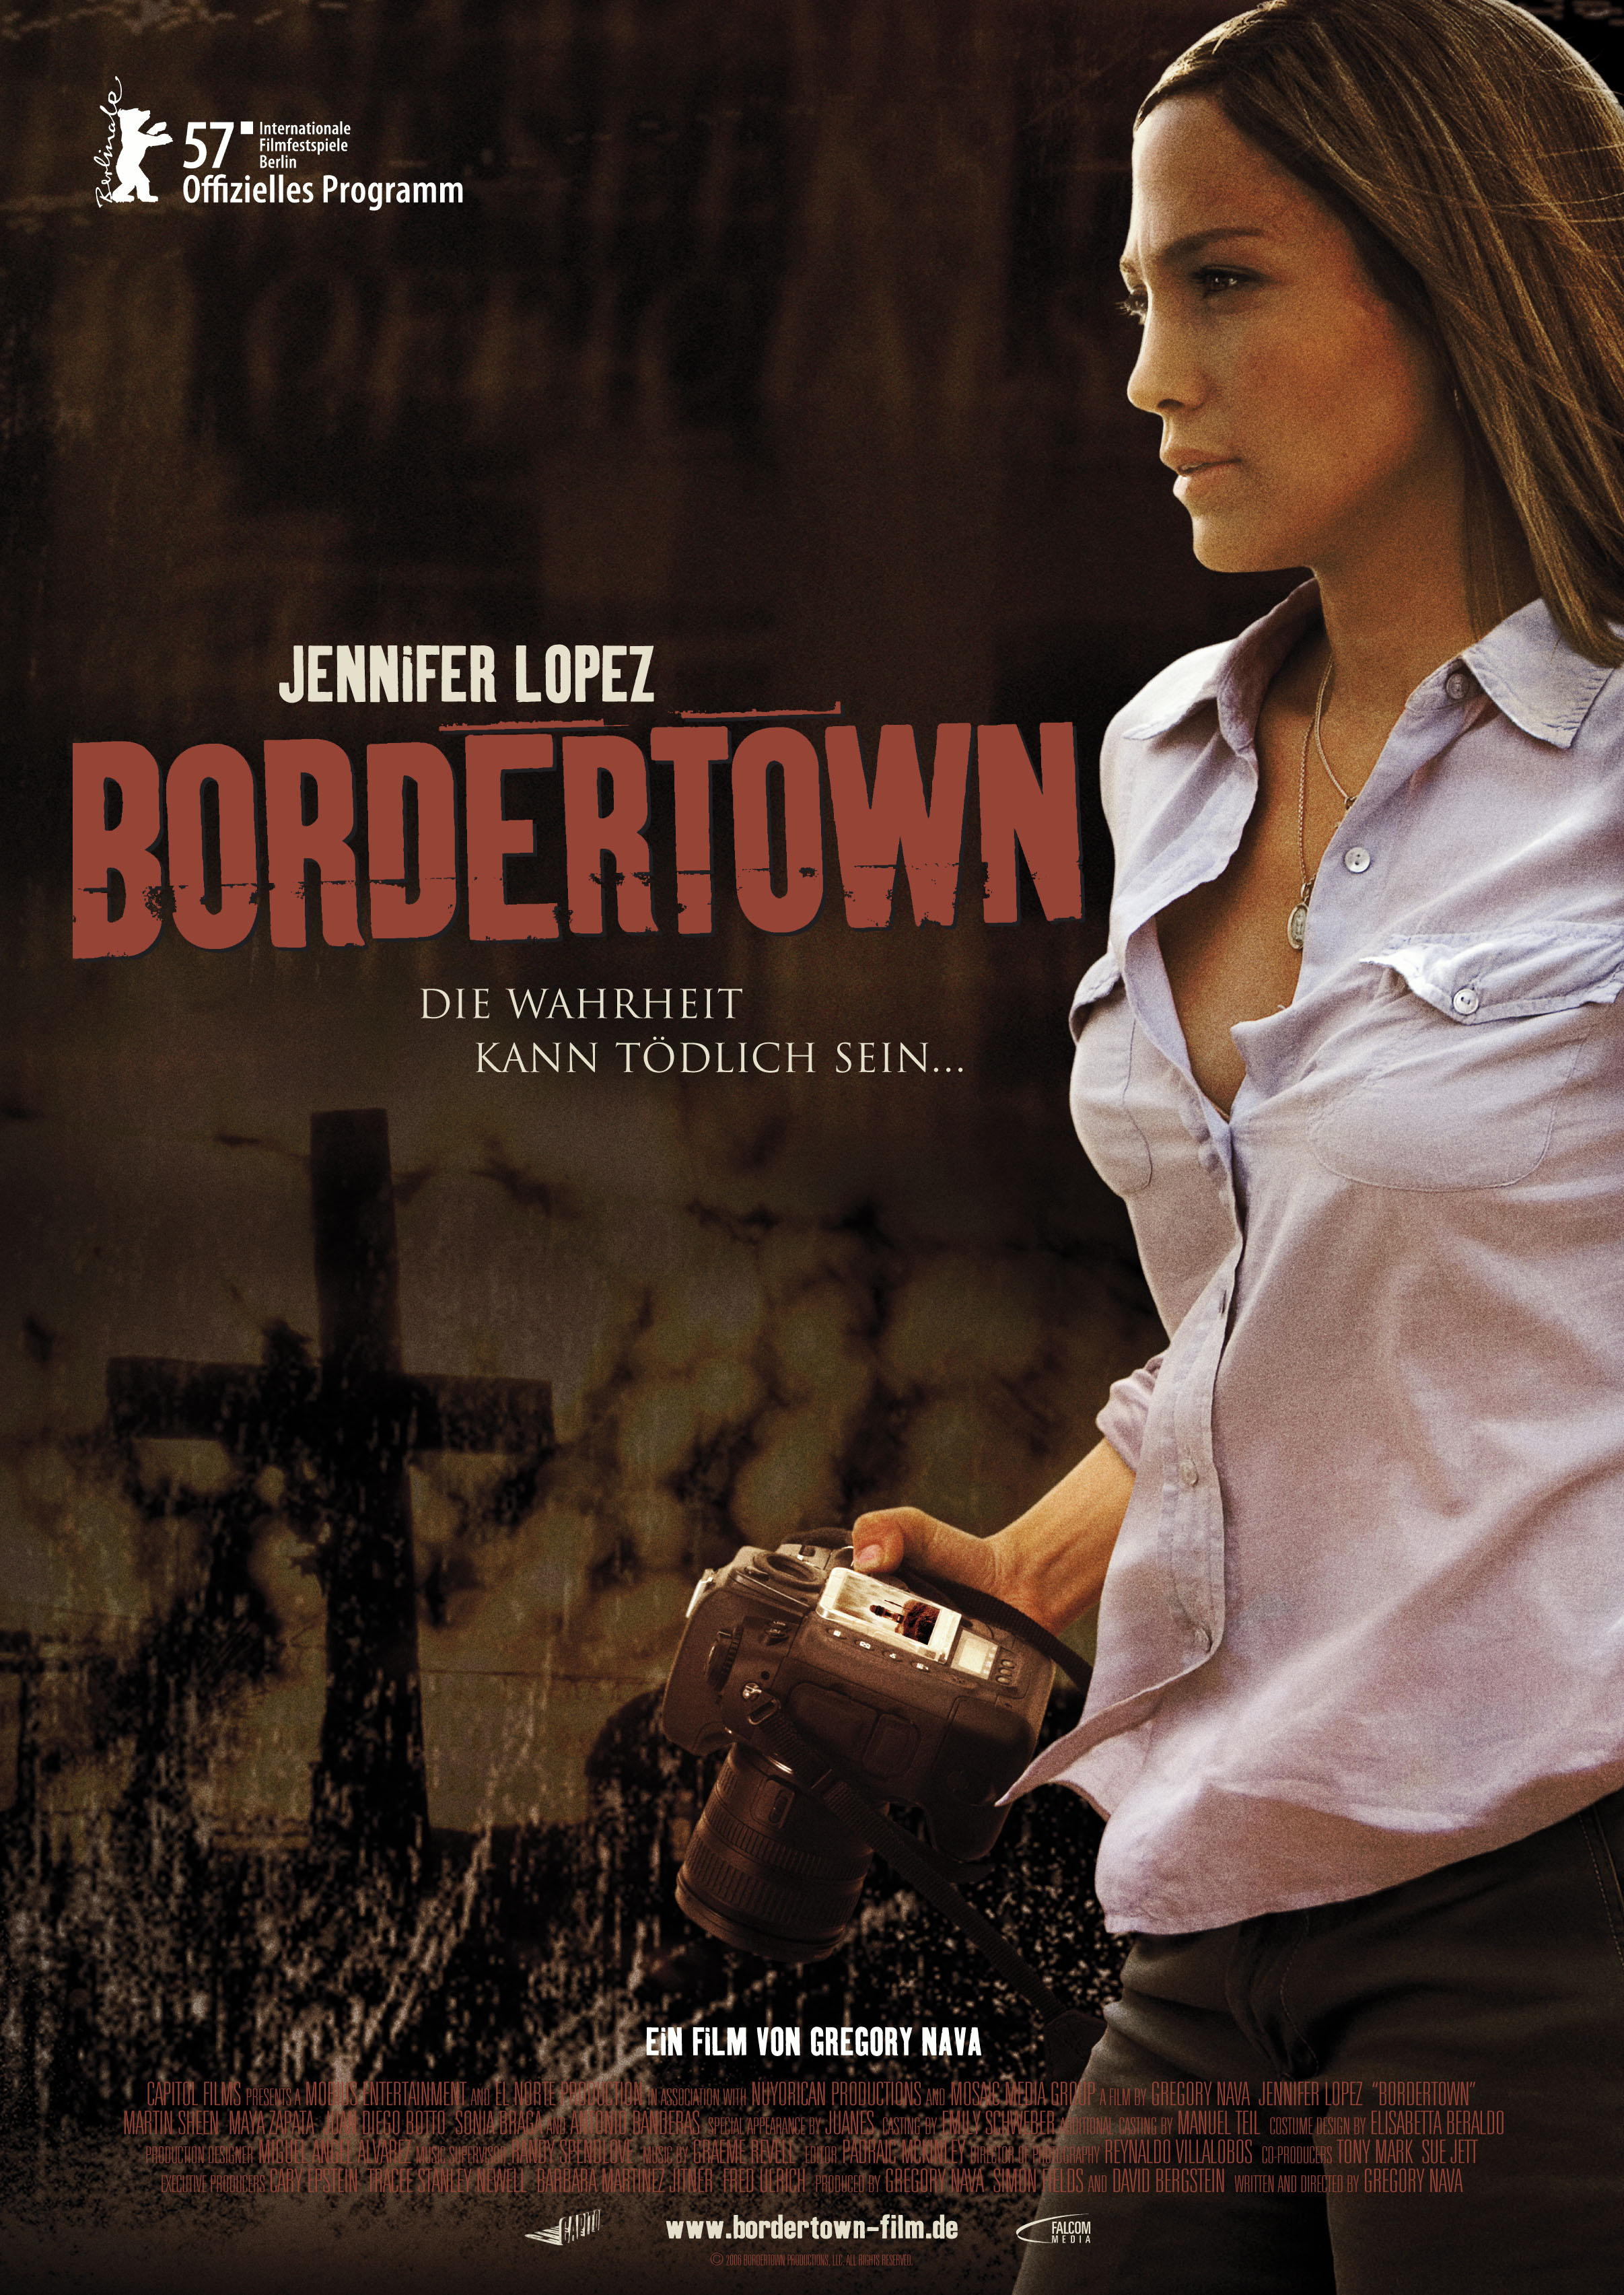 Bordertown Film 2006 Trailer Kritik Kinode